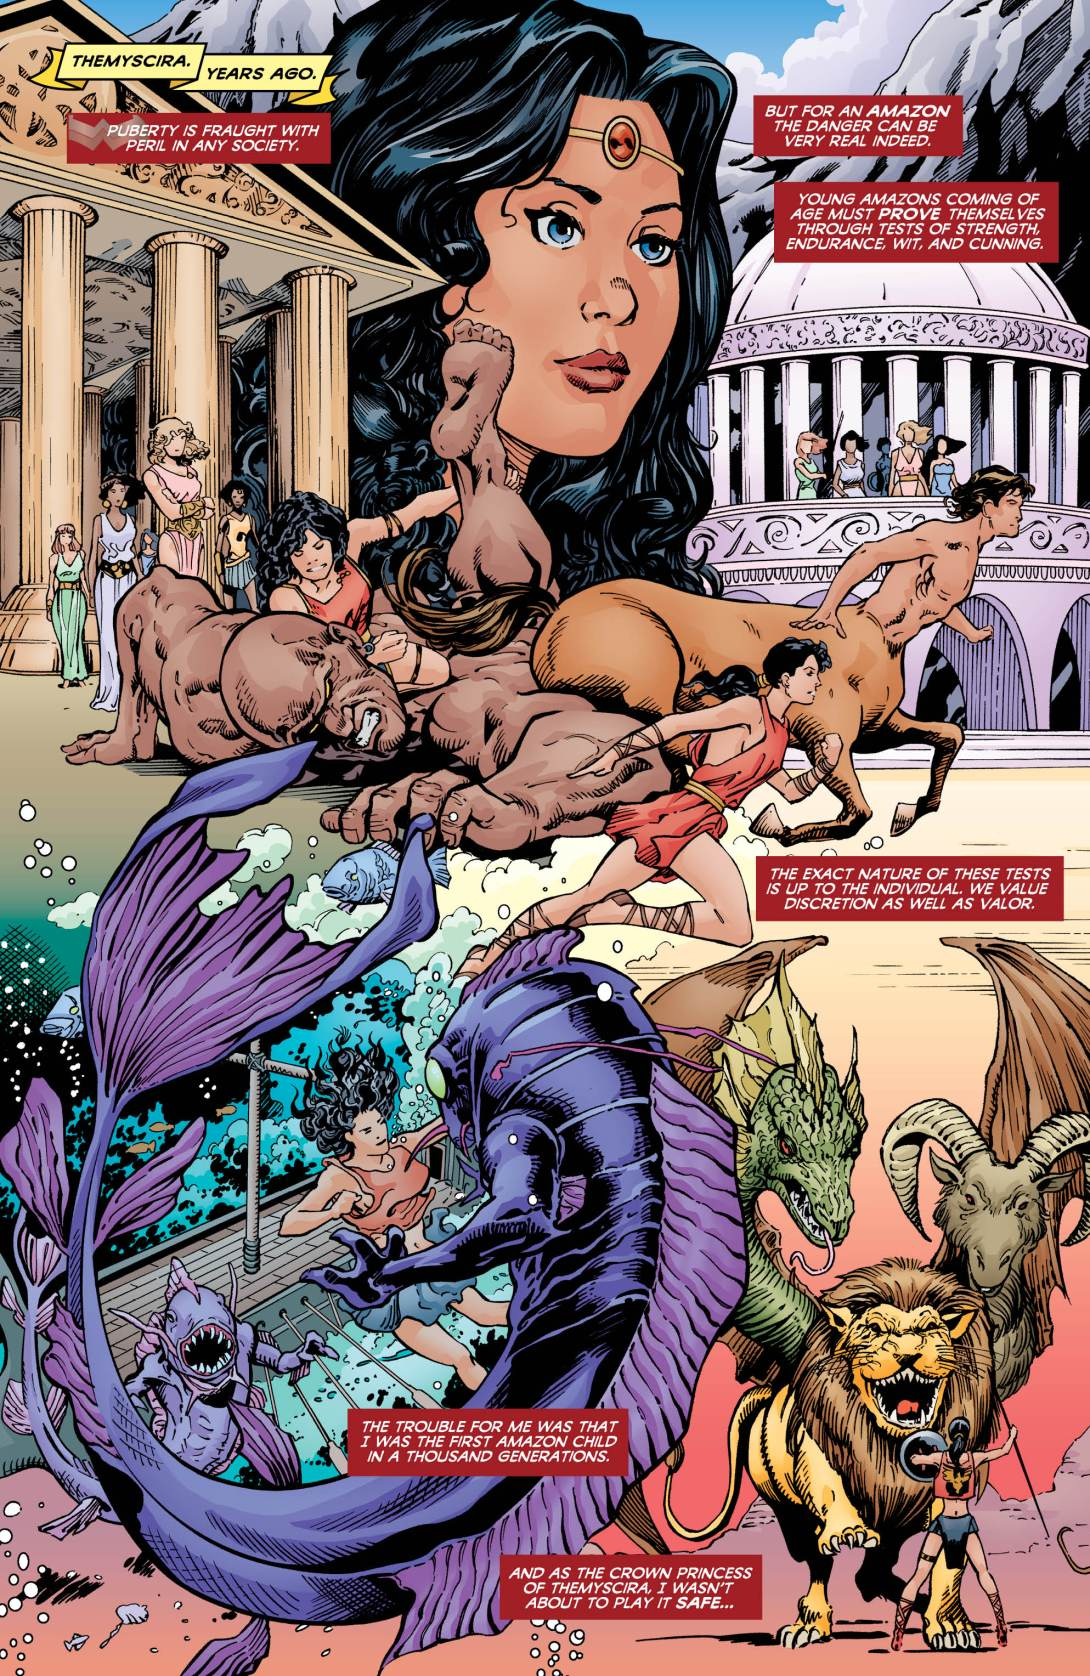 Wonder Woman Taz 3 - DC Comics News